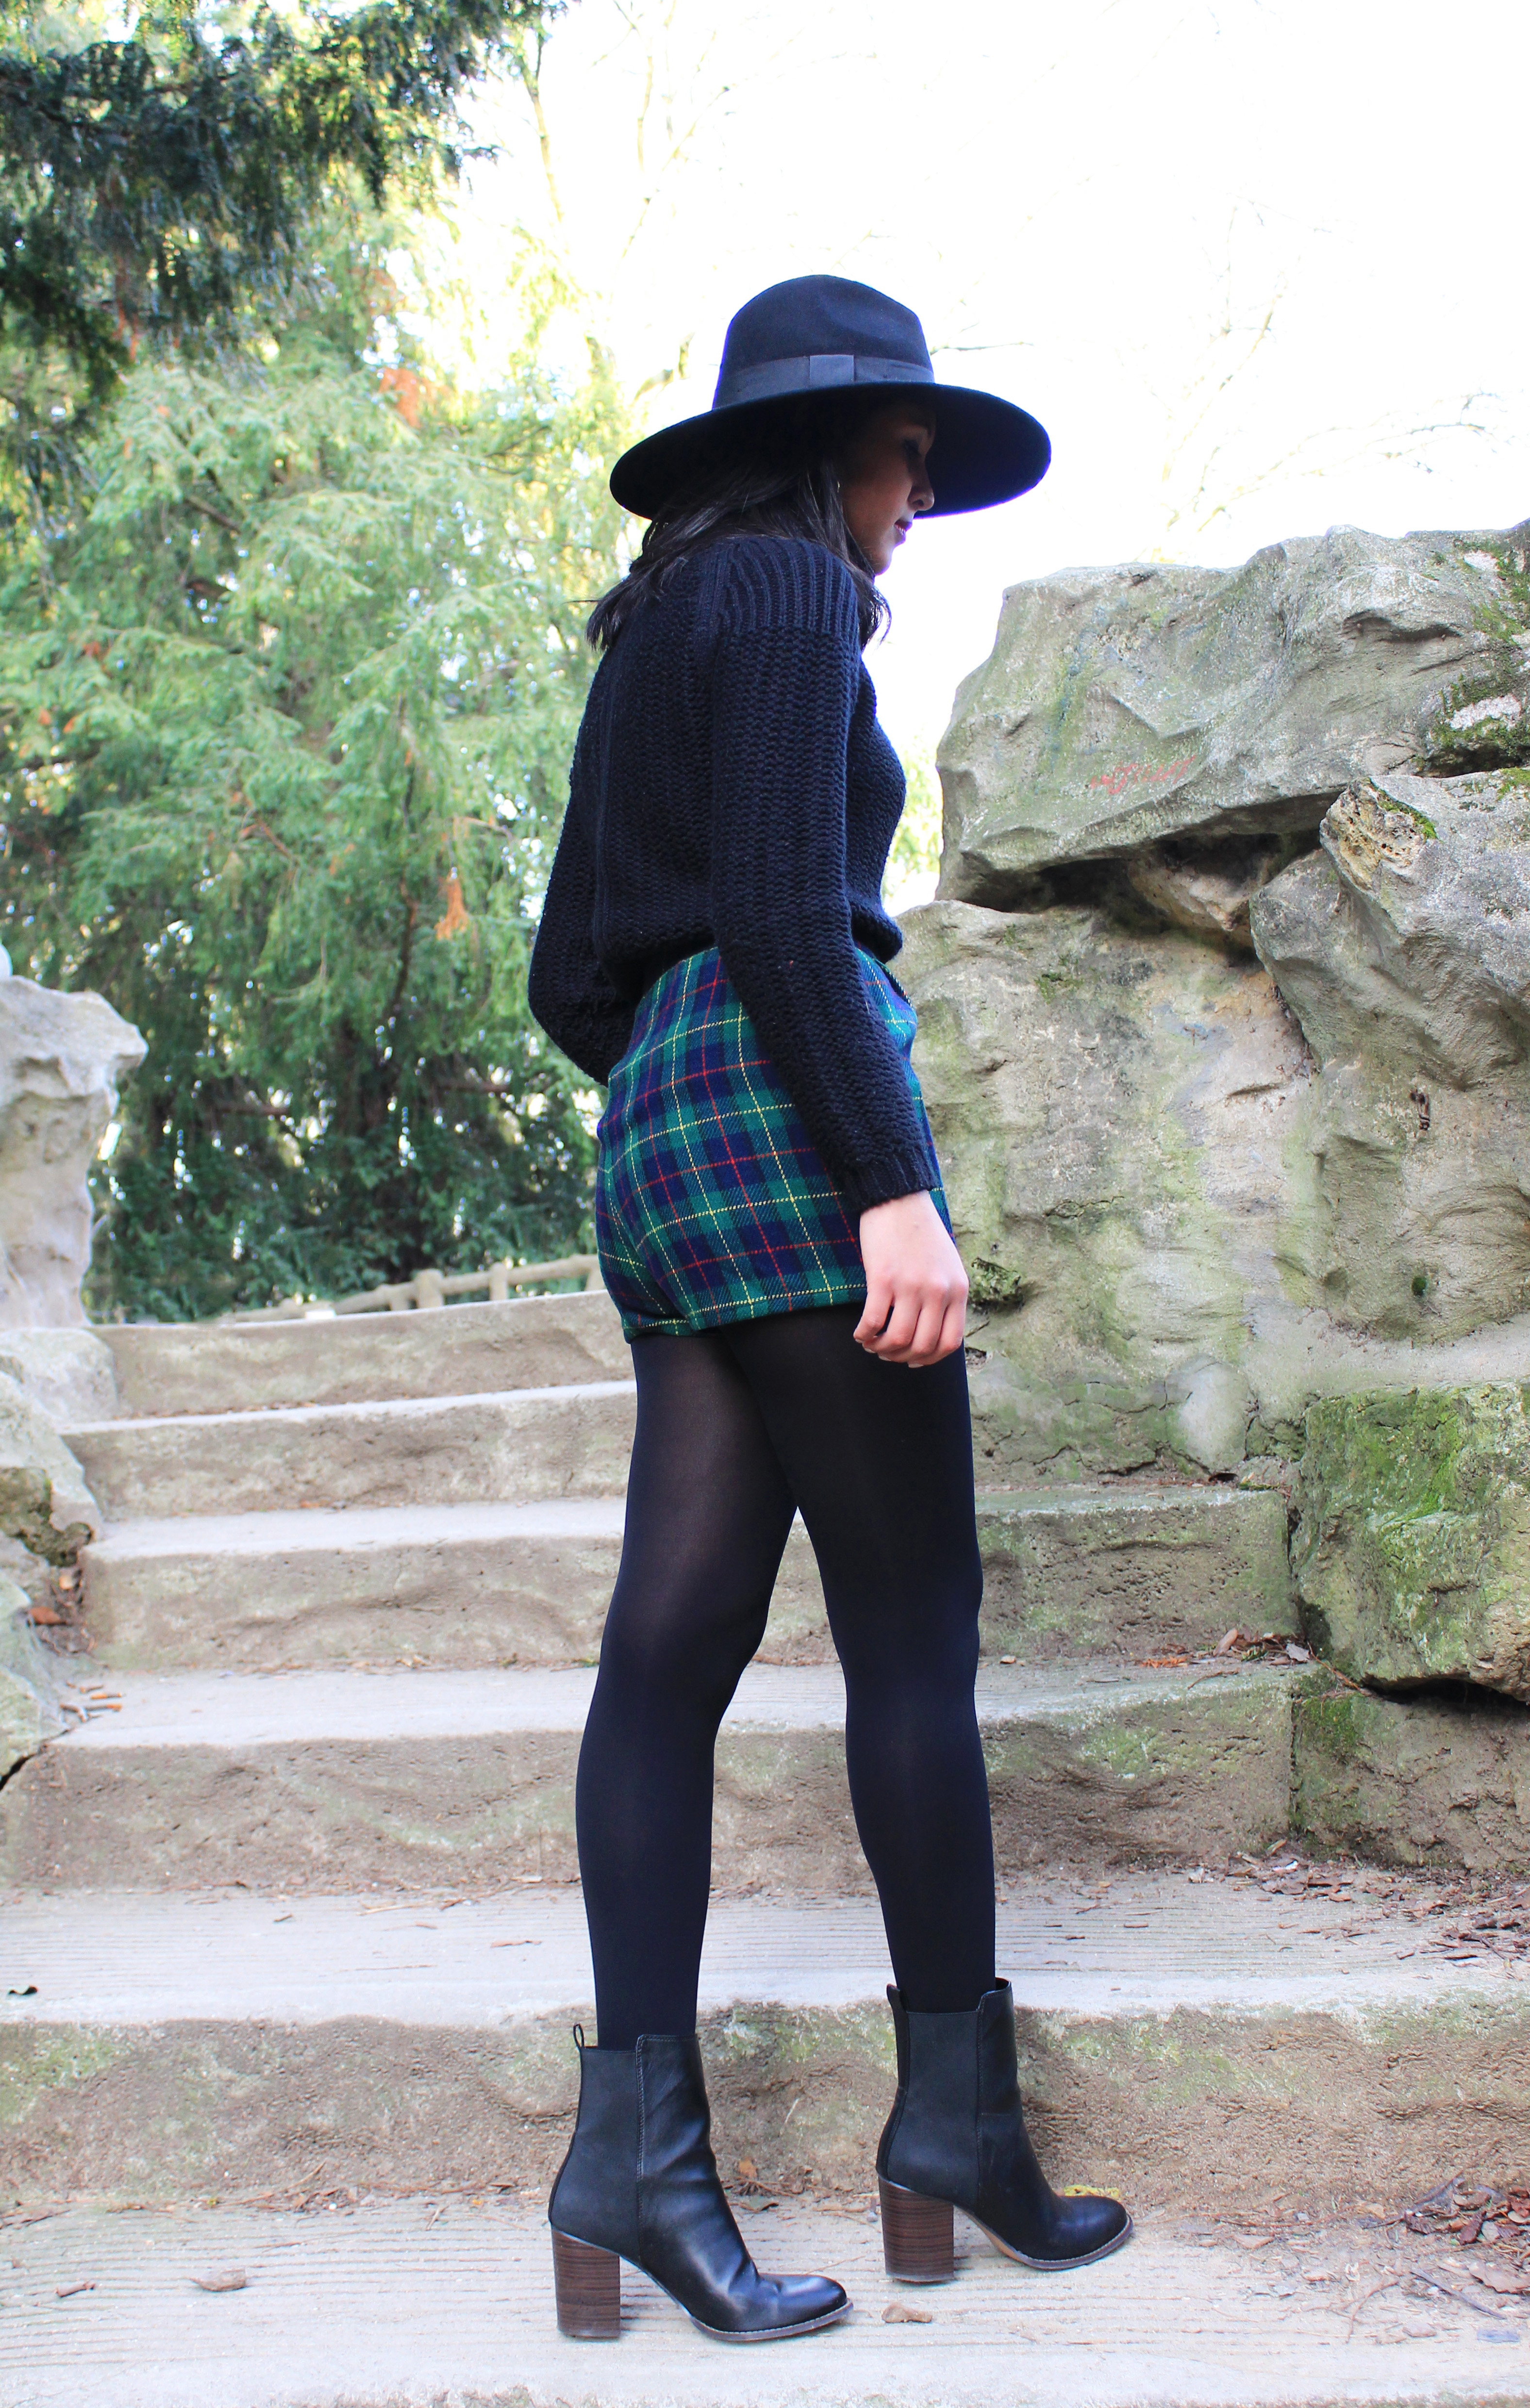 Soleil d'hiver_chapeau-Zara-col_roule-Pull-and-Bear_Short_Tartan_Boots-Asos-1